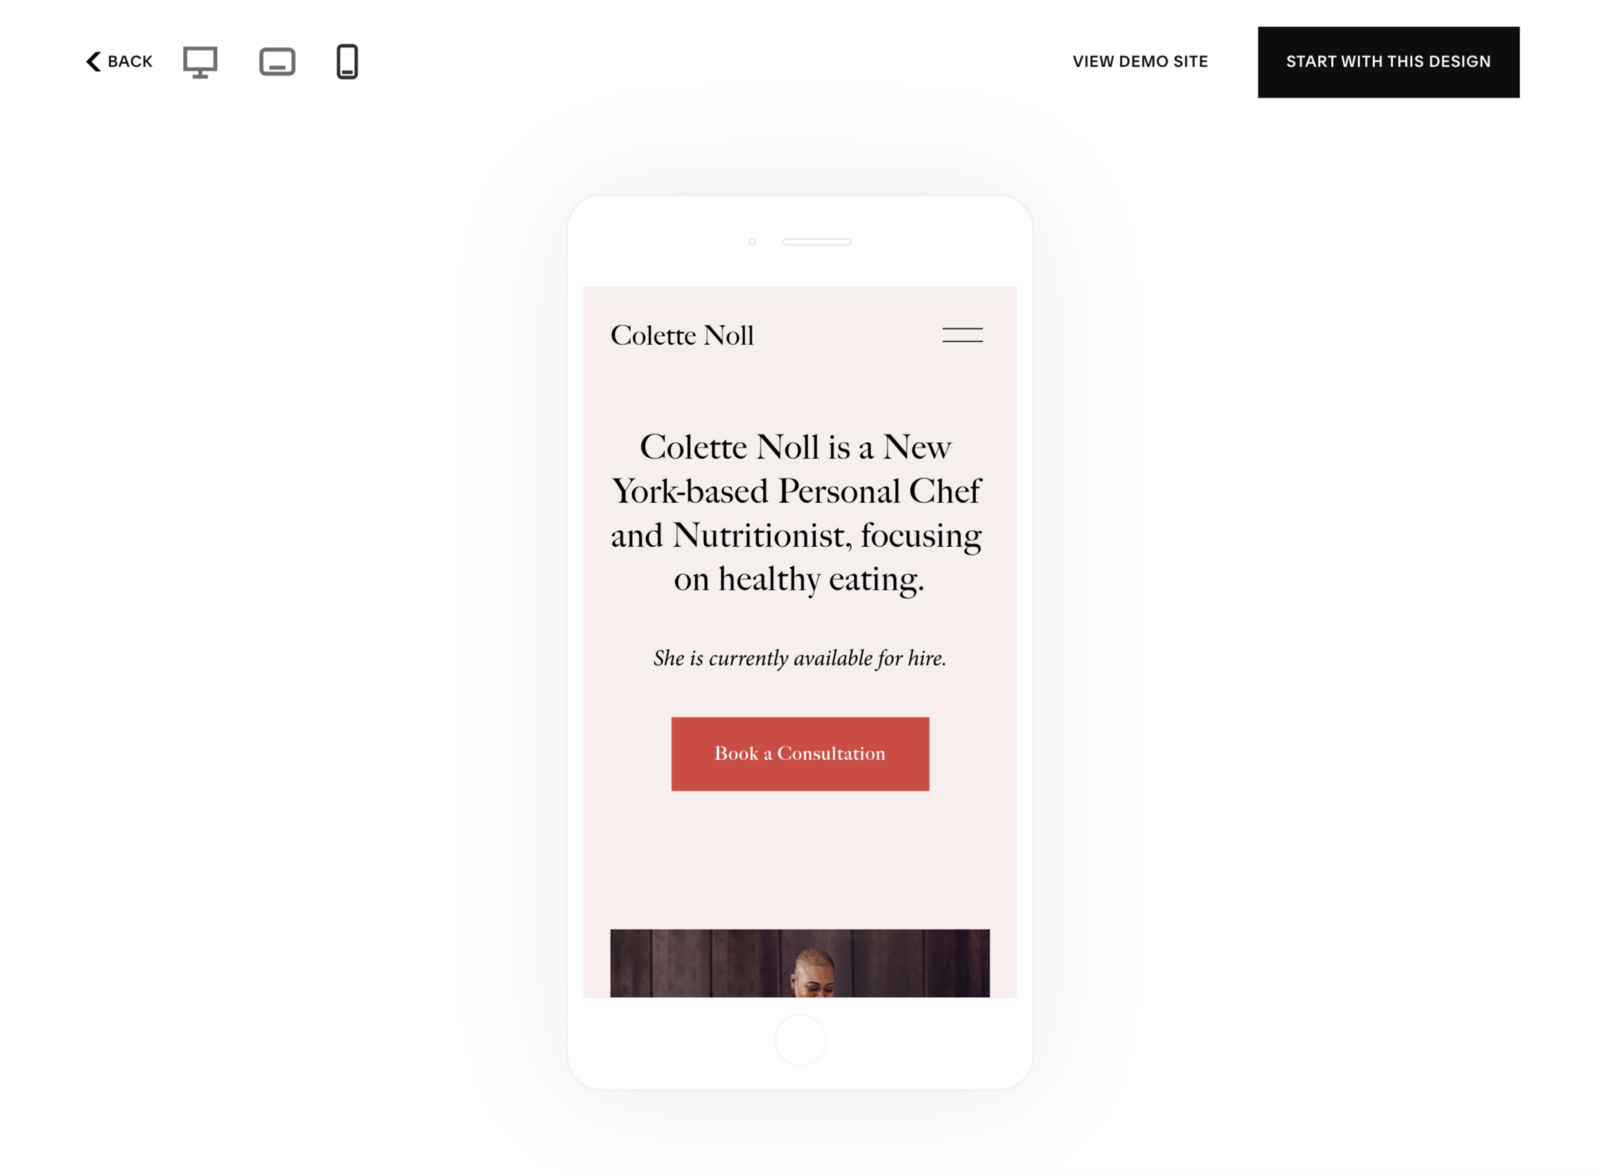 Previewing a Squarespace template for mobile (source: Squarespace)